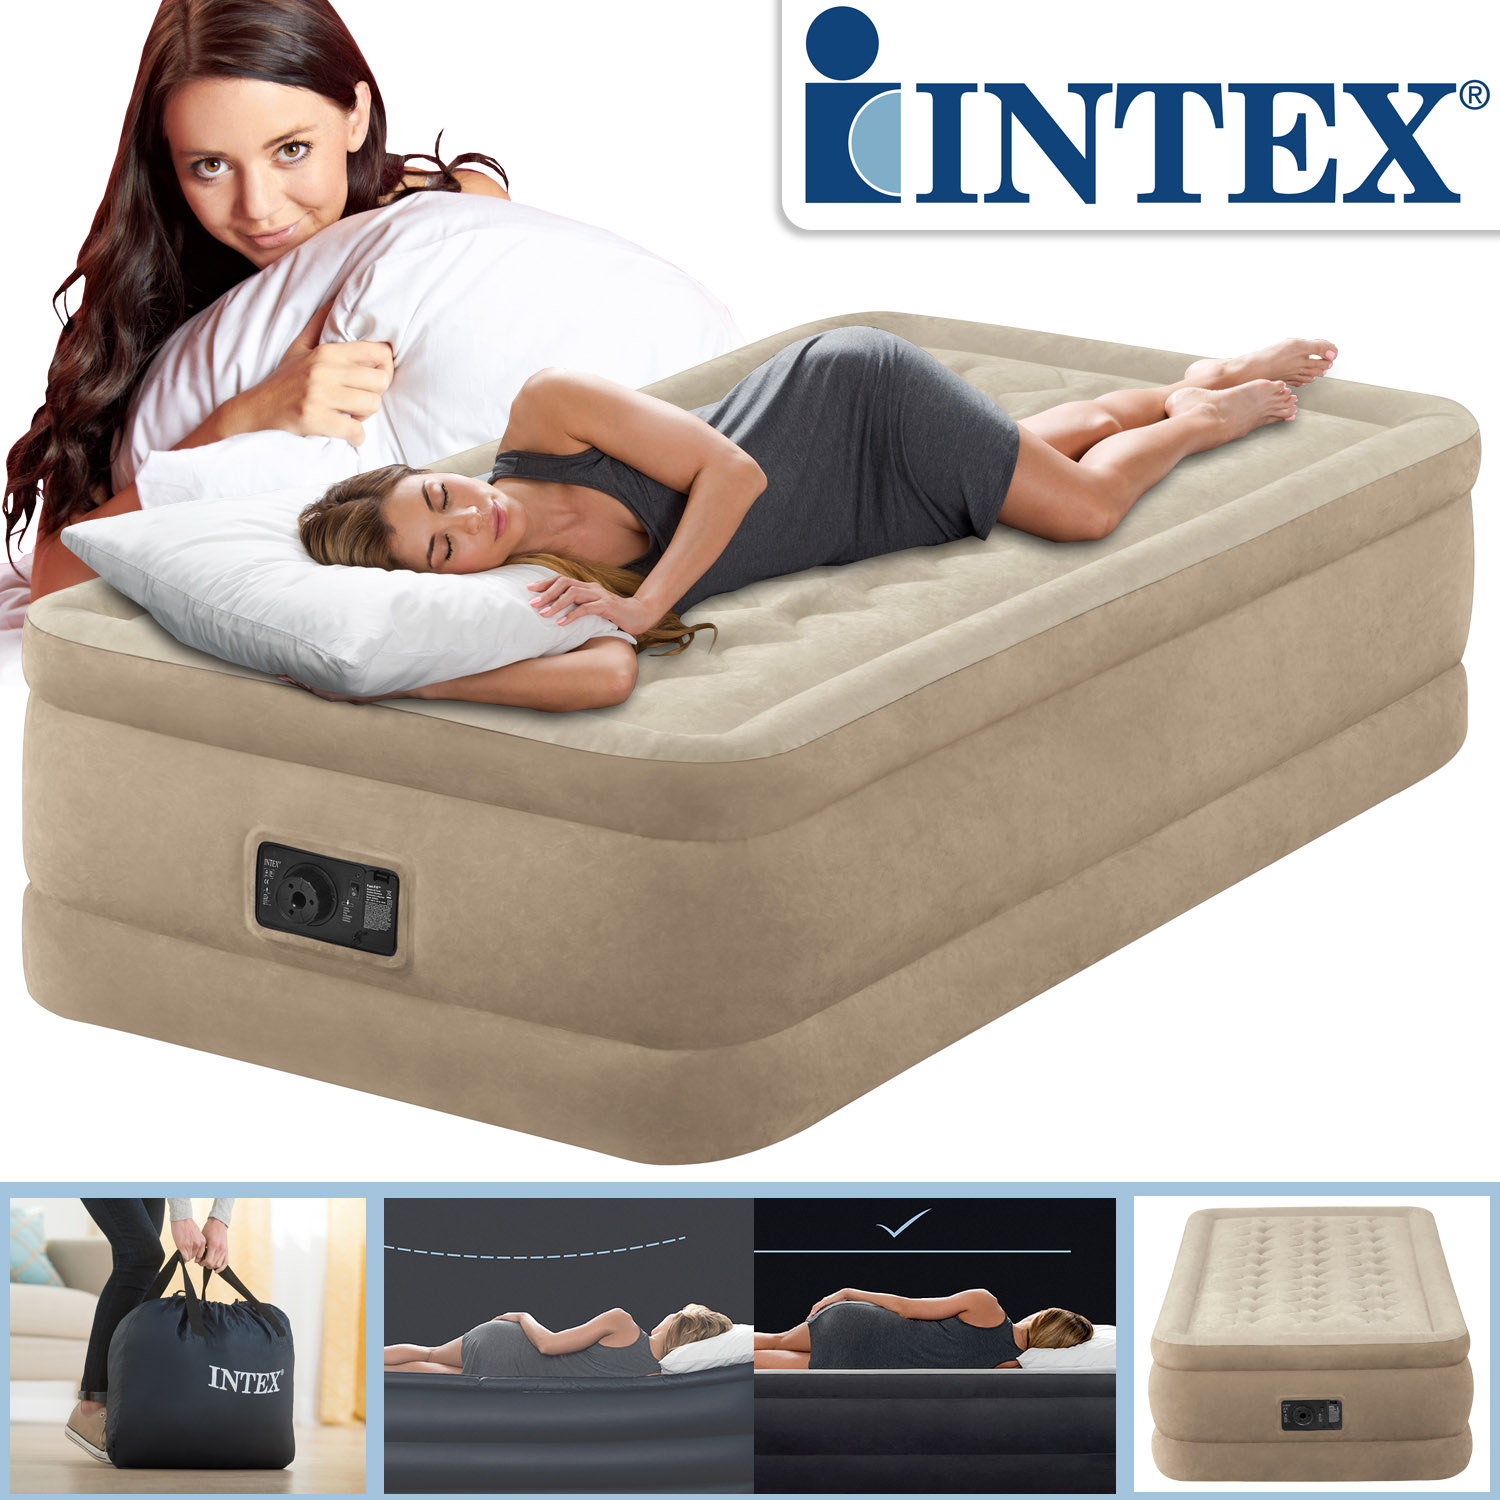 intex luftbett mit pumpe g stebett bett matratze luftmatratze selbstaufblasend ebay. Black Bedroom Furniture Sets. Home Design Ideas